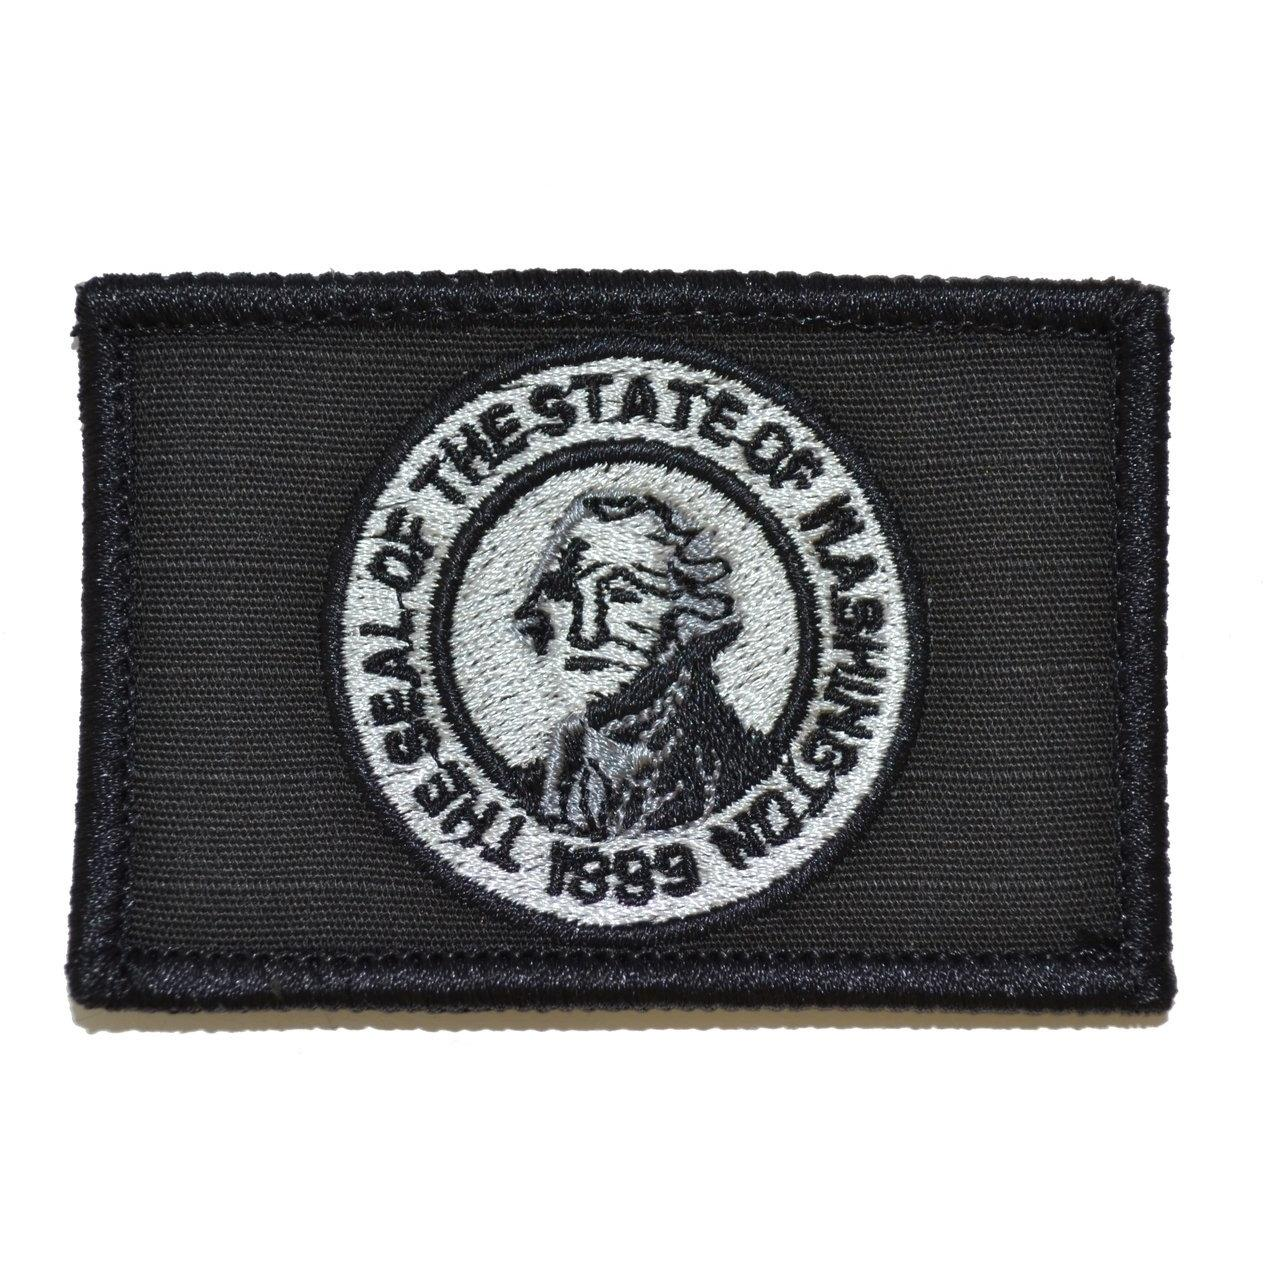 Washington State Flag - 2x3 Patch